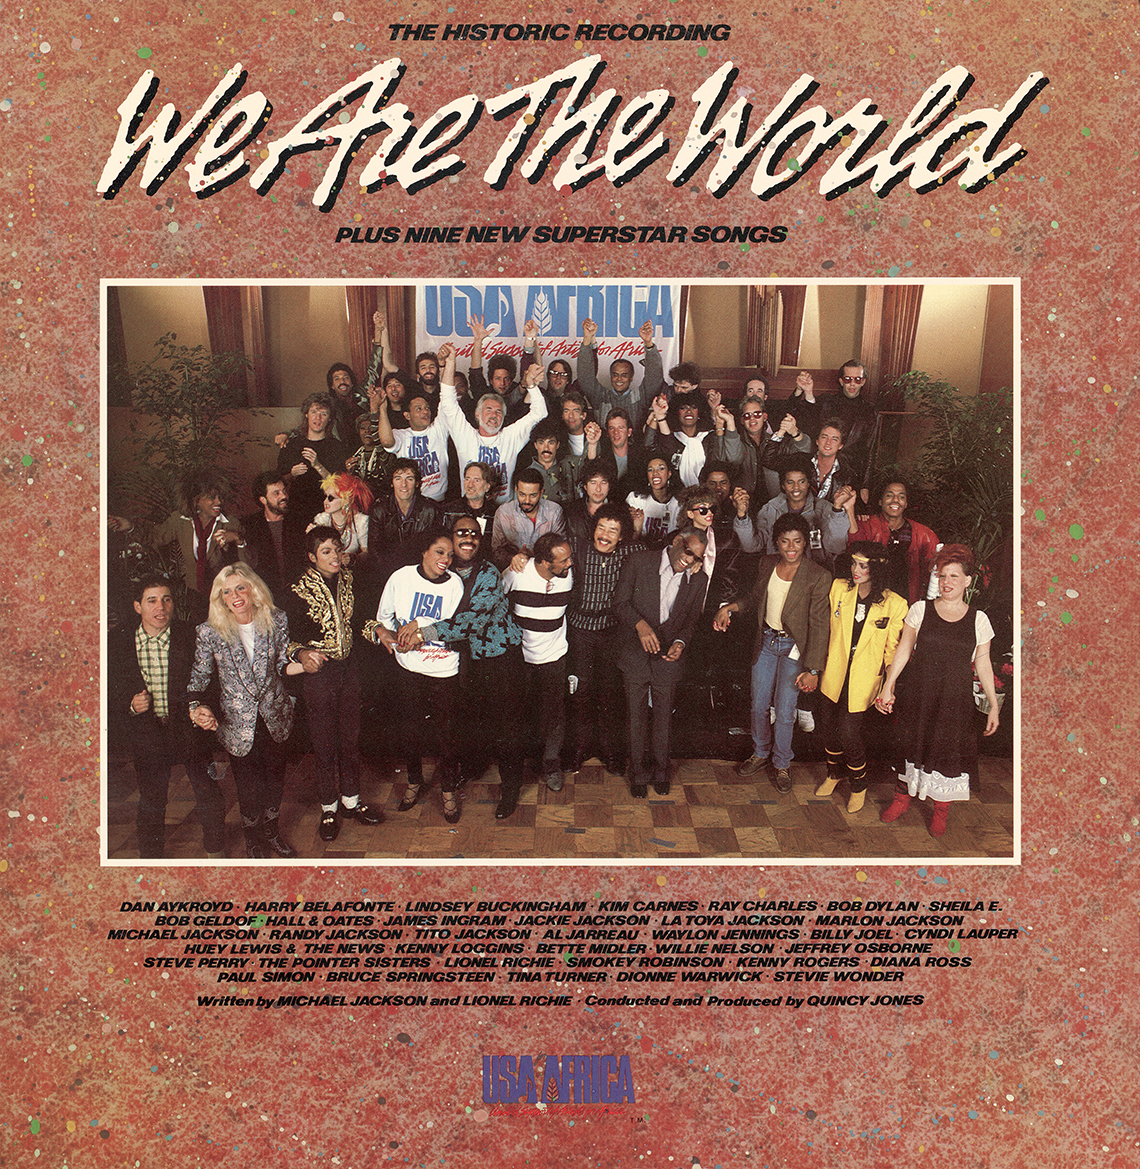 Front cover of the We are the World record album shows the group of musicians together for a photo